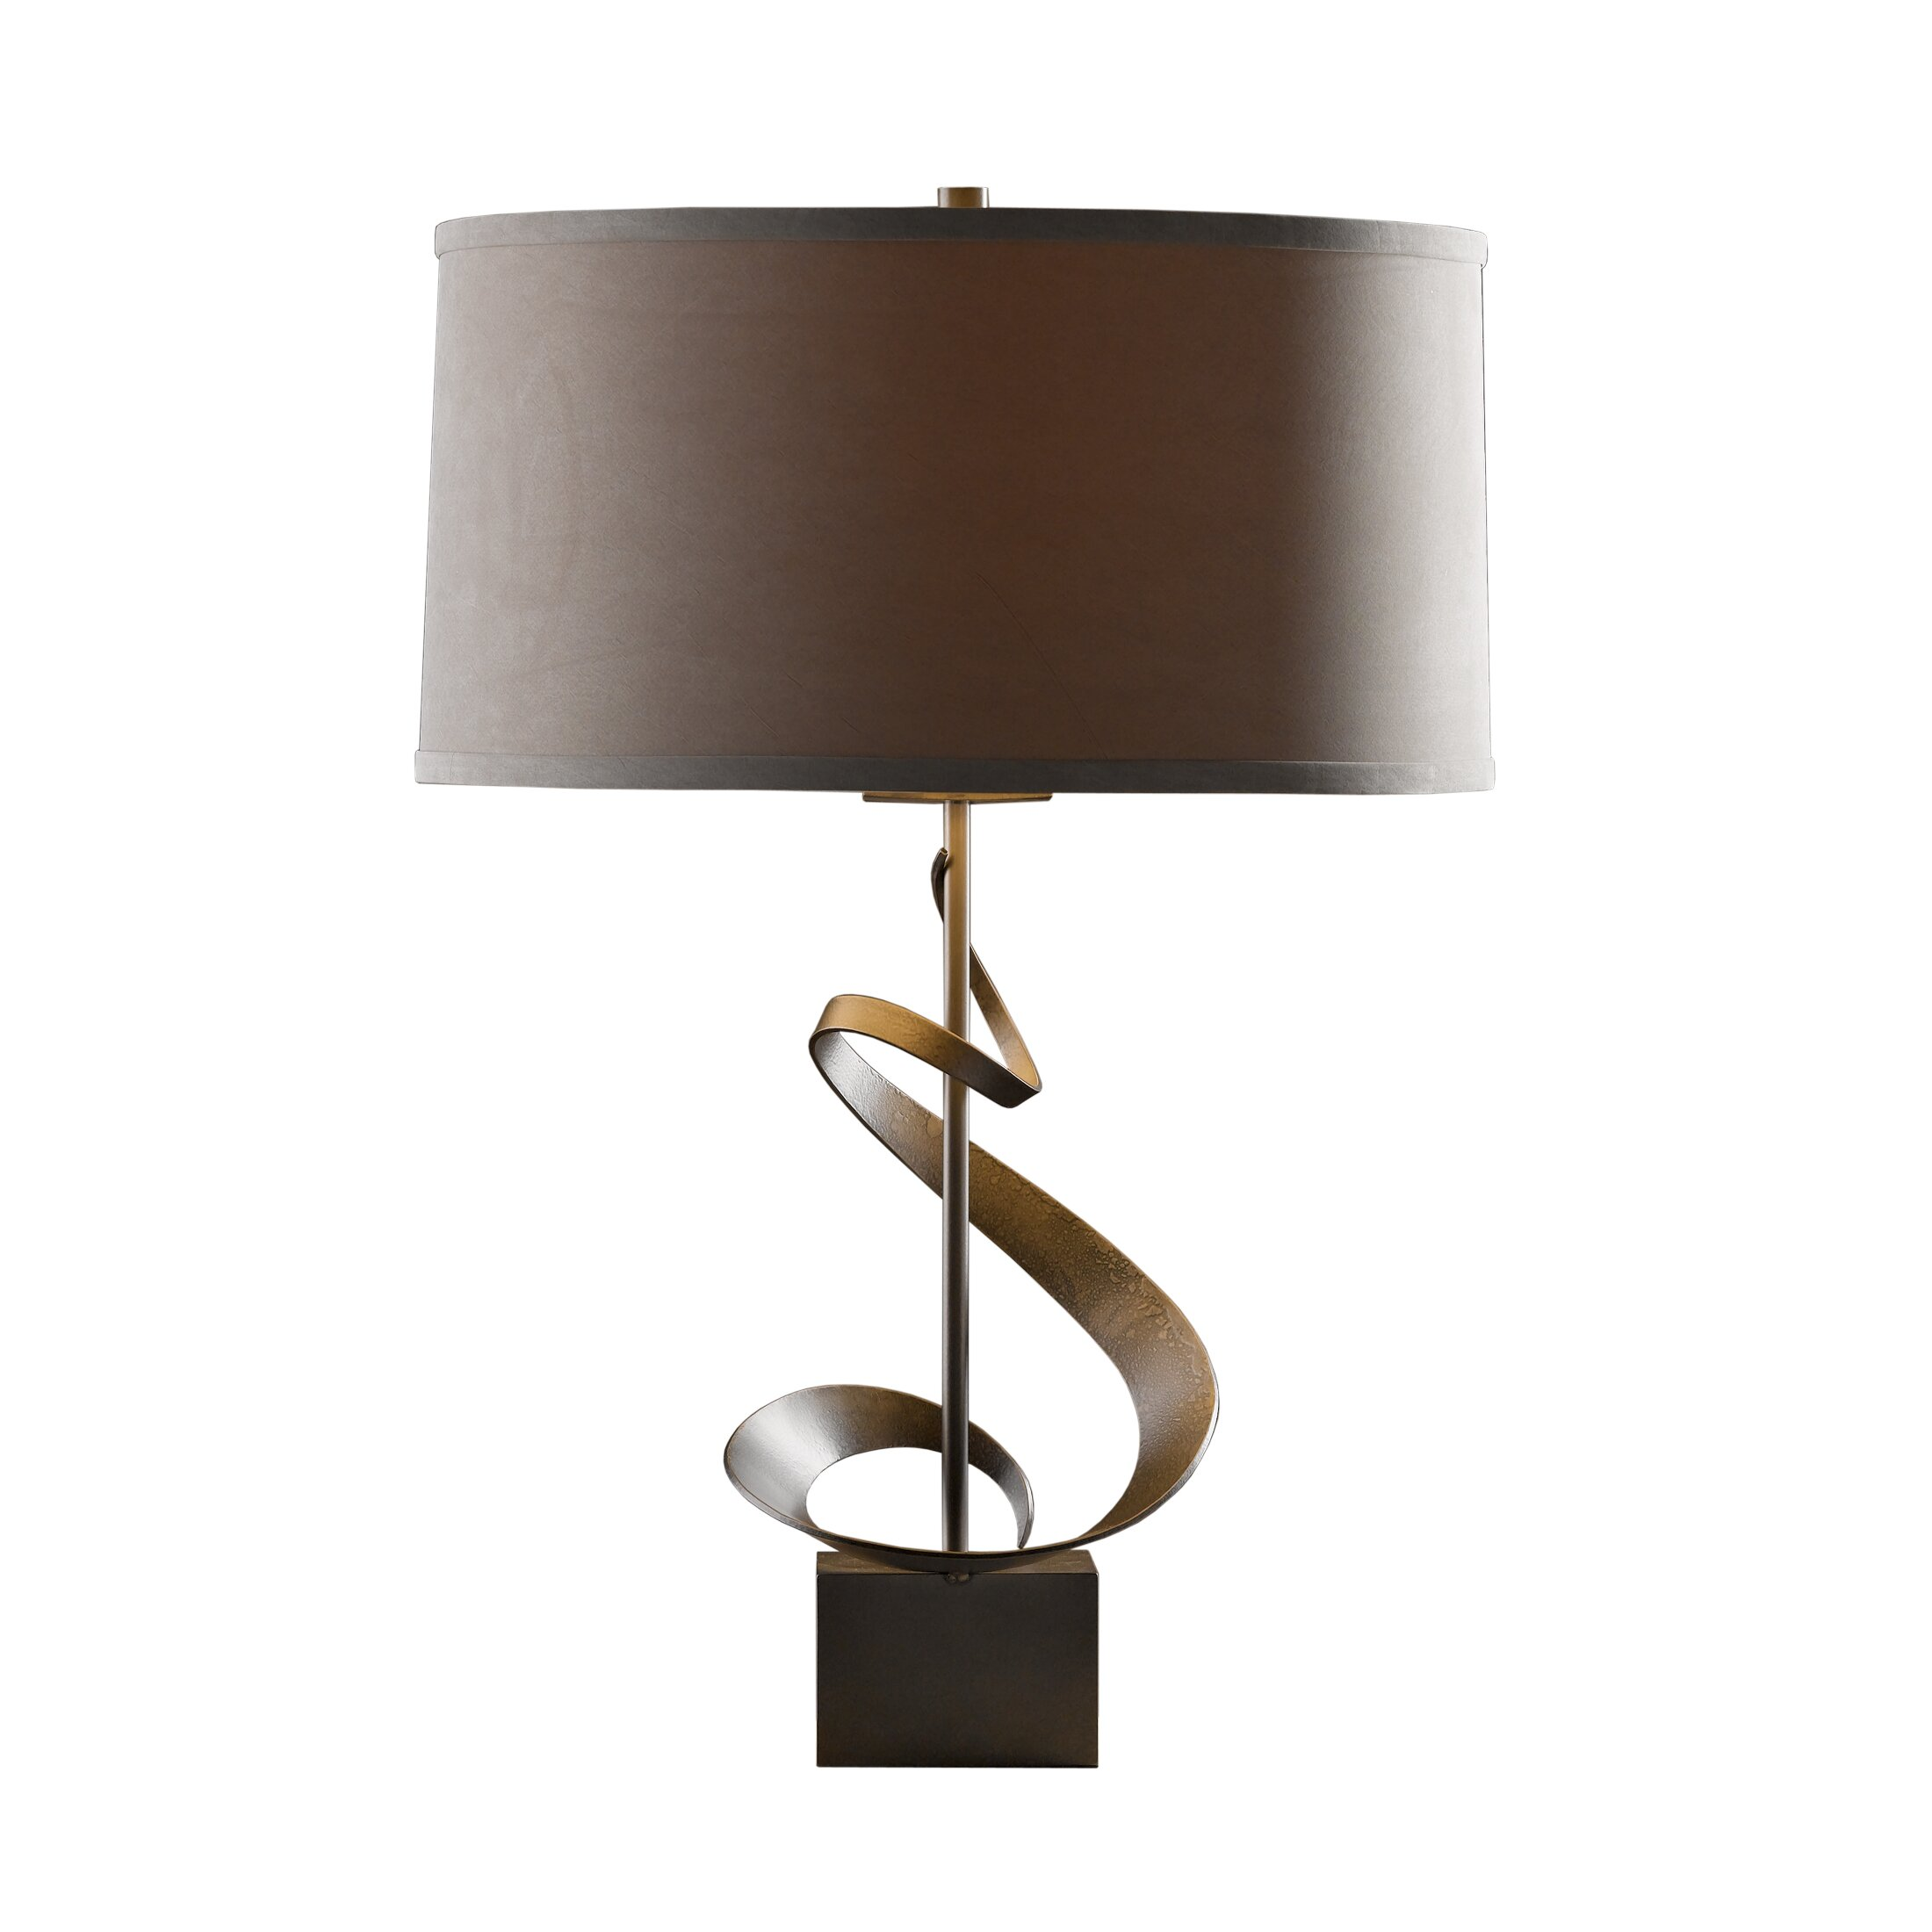 hubbardton forge gallery 22 9 table lamp wayfair. Black Bedroom Furniture Sets. Home Design Ideas